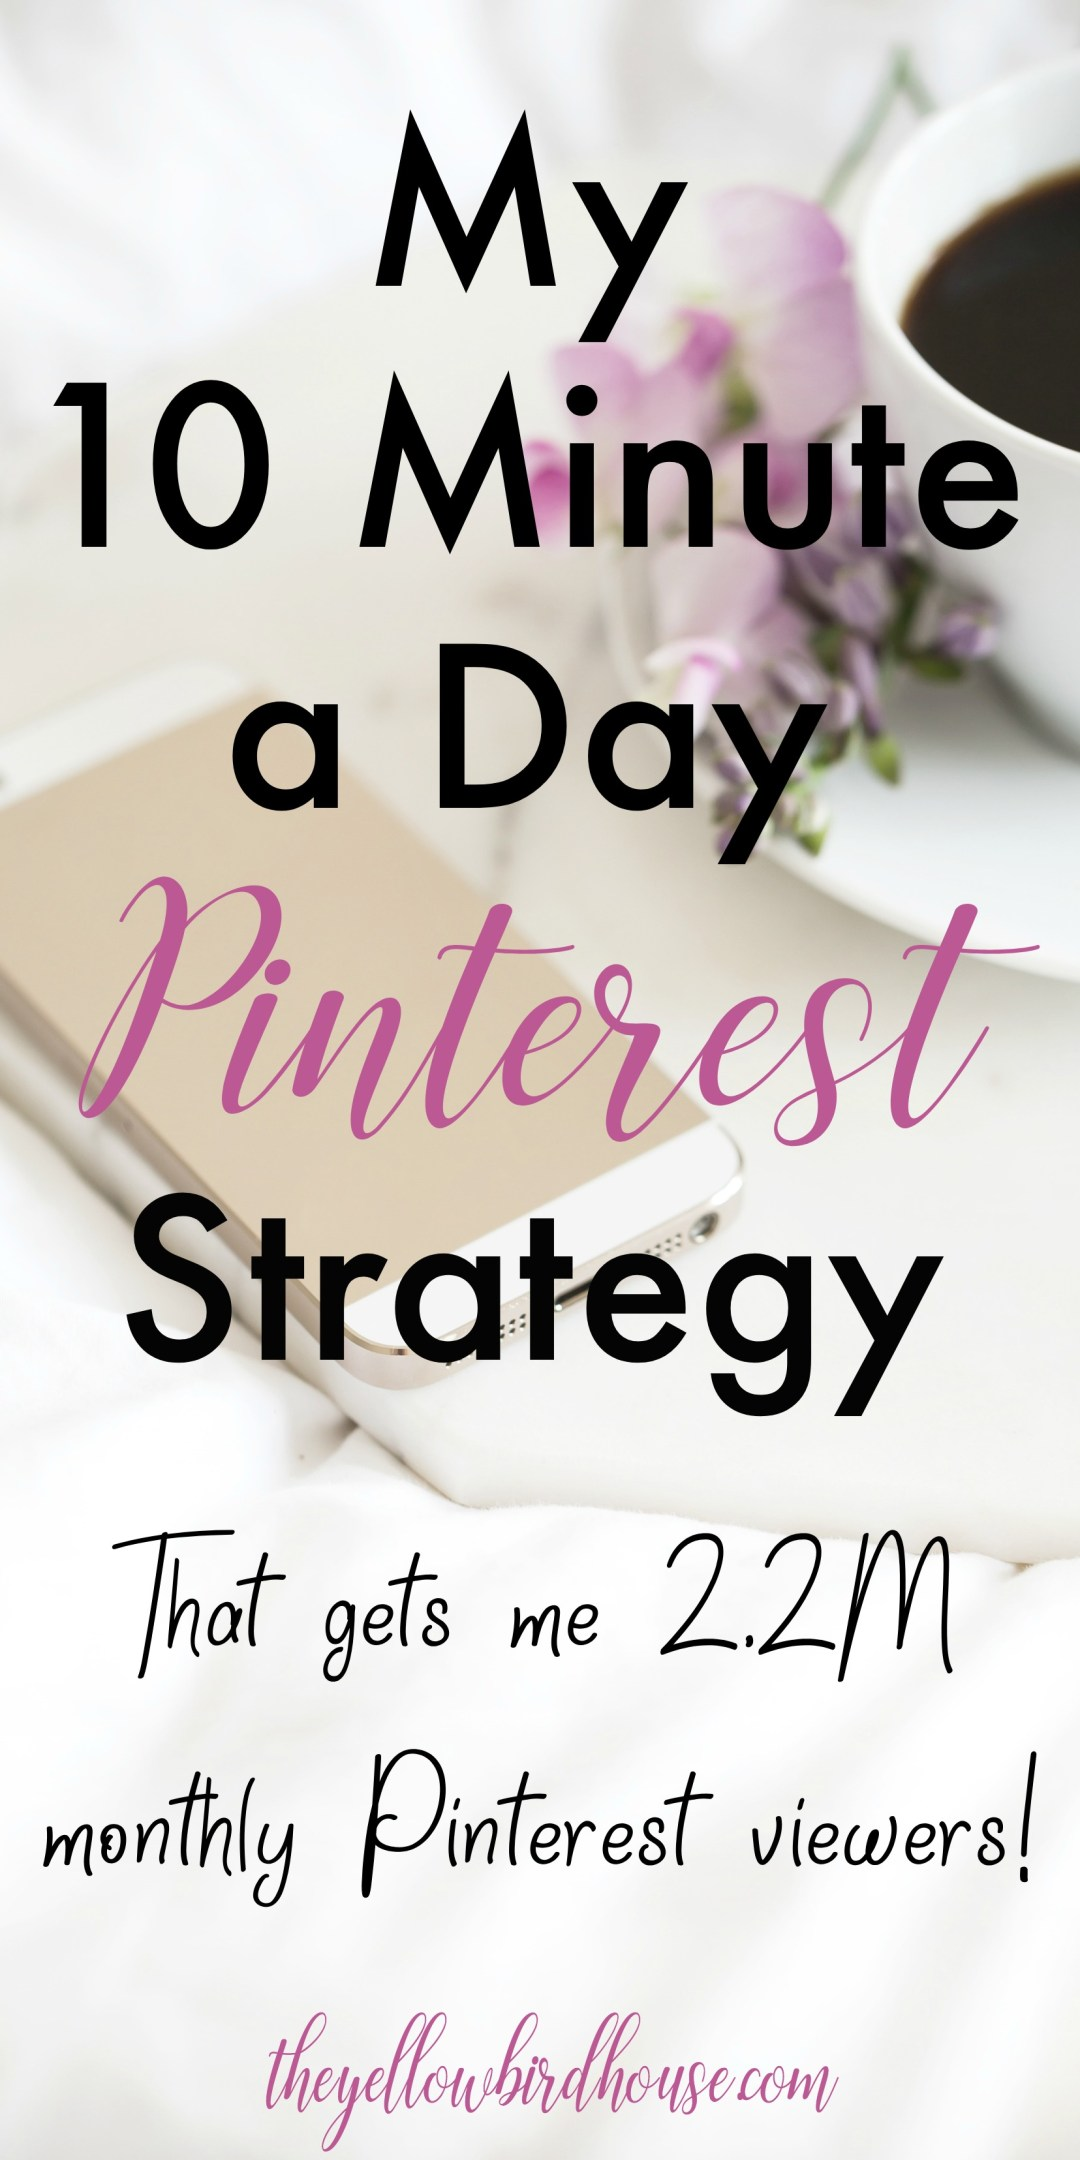 This simple Pinterest strategy only takes me 10 minutes a day and gets me 2.2 million monthly Pinterest viewers! This strategy works for manual pinning or with a scheduling tool. It's simple and it works. I rely on Pinterest for the bulk of my traffic, it is a powerful tool. But it doesn't need to take up all my time! 10 minutes a day is all I've got, and this pinning strategy is so effective that 10 minutes is all I need!